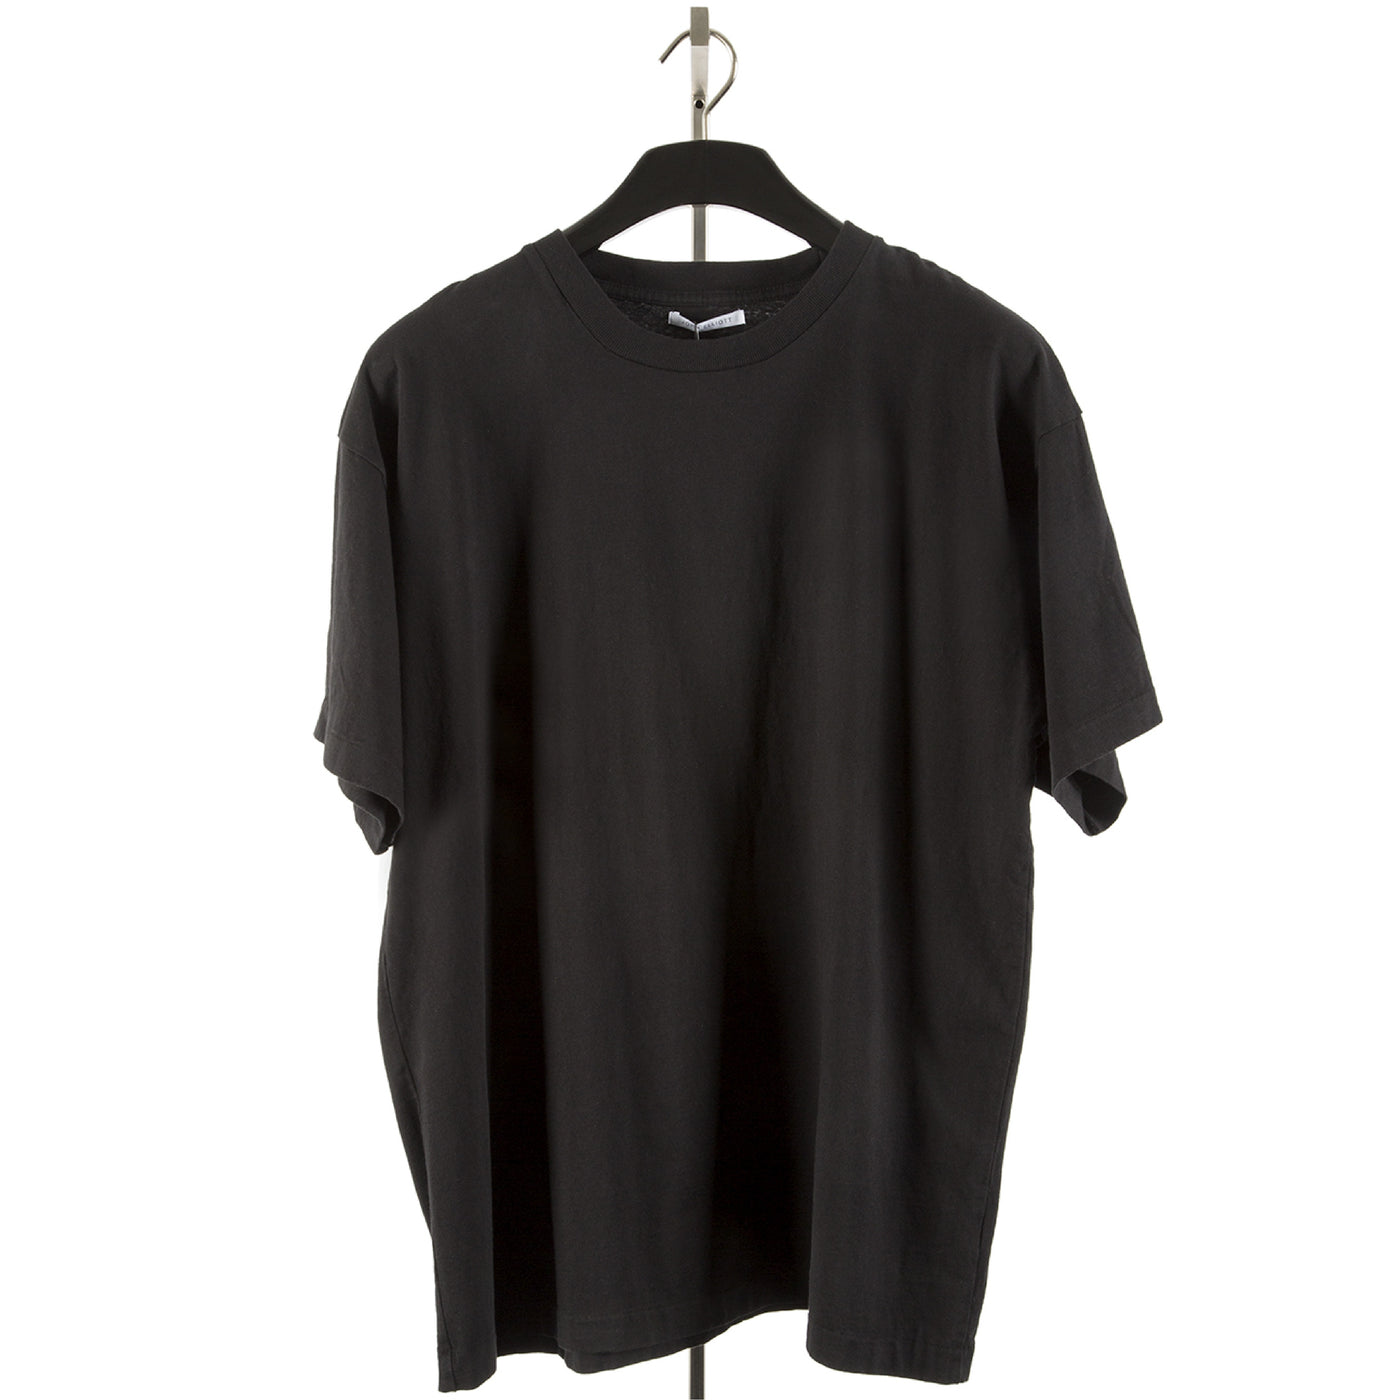 Load image into Gallery viewer, JOHN ELLIOTT RECYCLED COTTON T-SHIRT BLACK